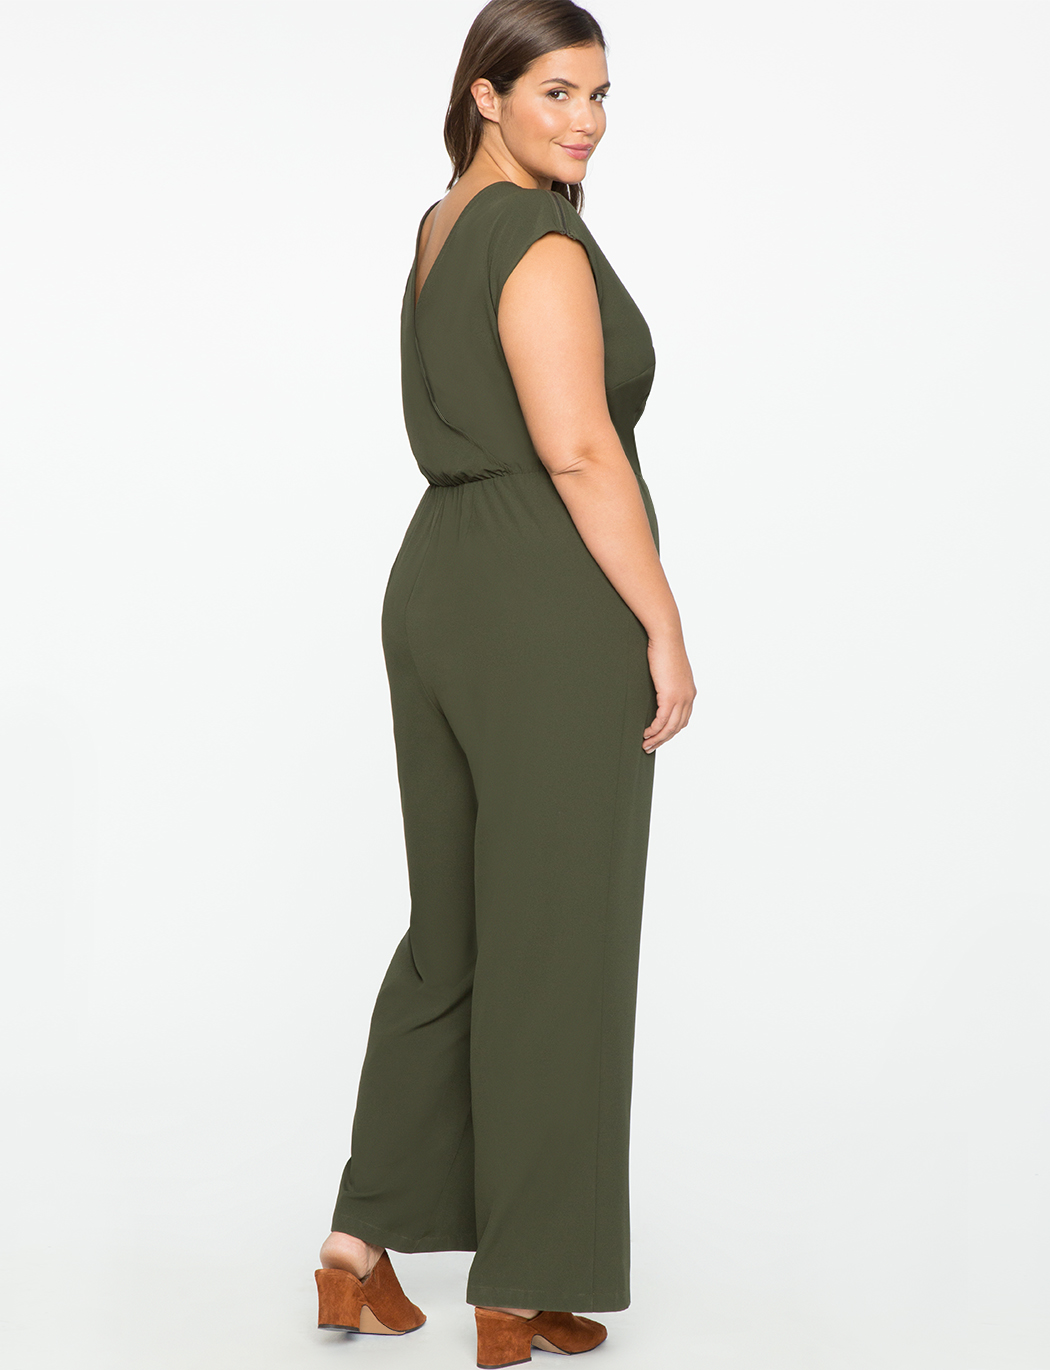 ELOQUII Olive Zip Detail Sleeveless Jumpsuit